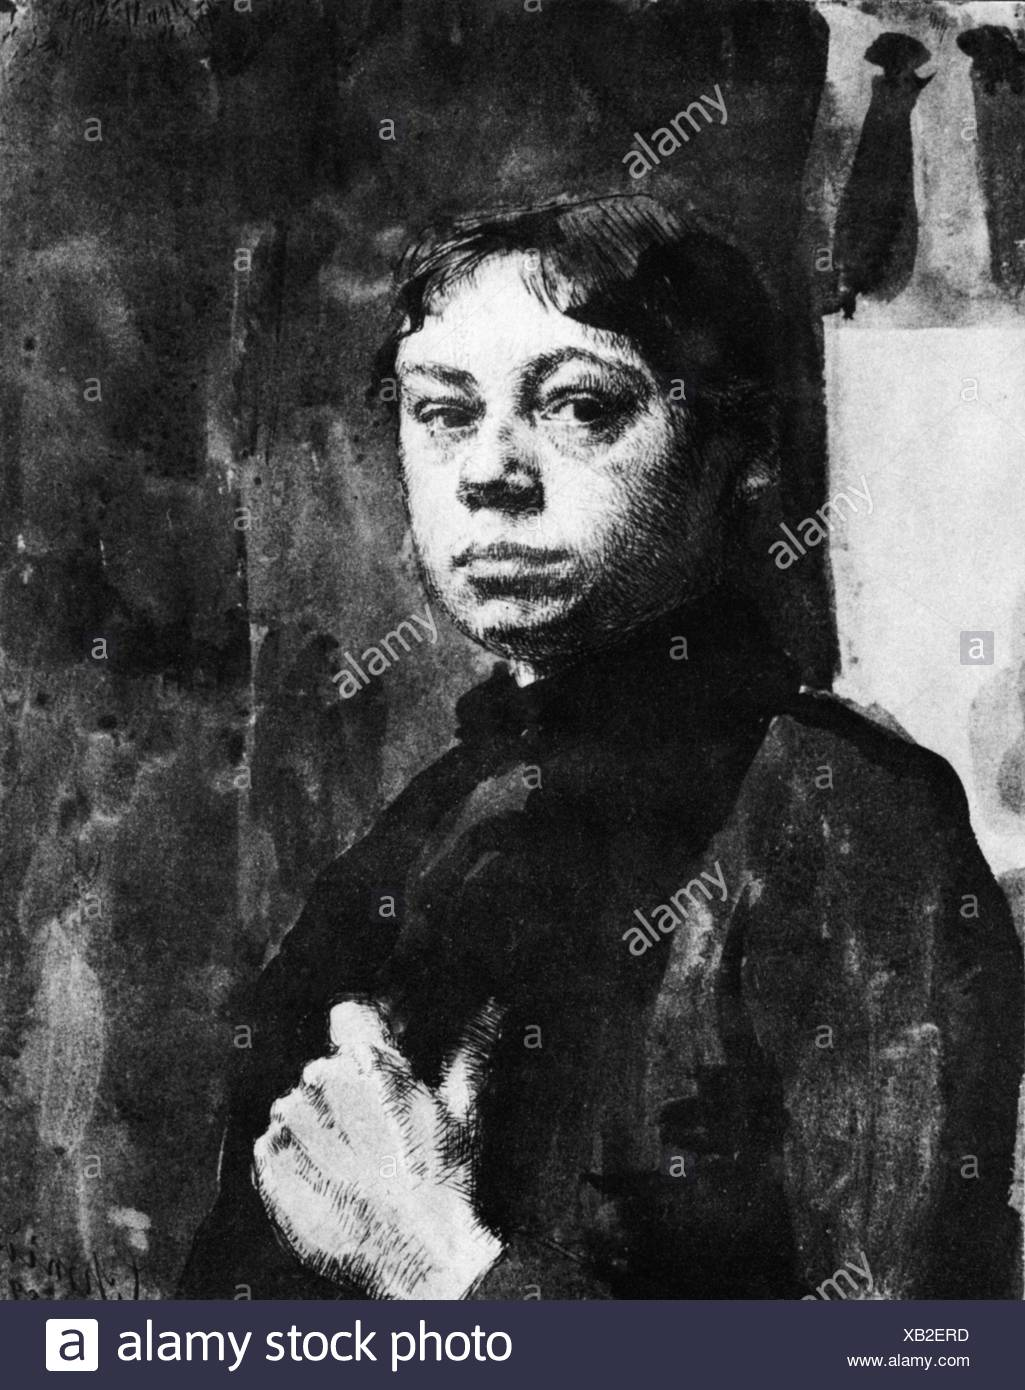 Kollwitz, Kaethe, 8.7.1867 - 22 .4.1945, German painter, printmaker, self-half length, drawing 1889, Additional-Rights-Clearances-NA - Stock Image